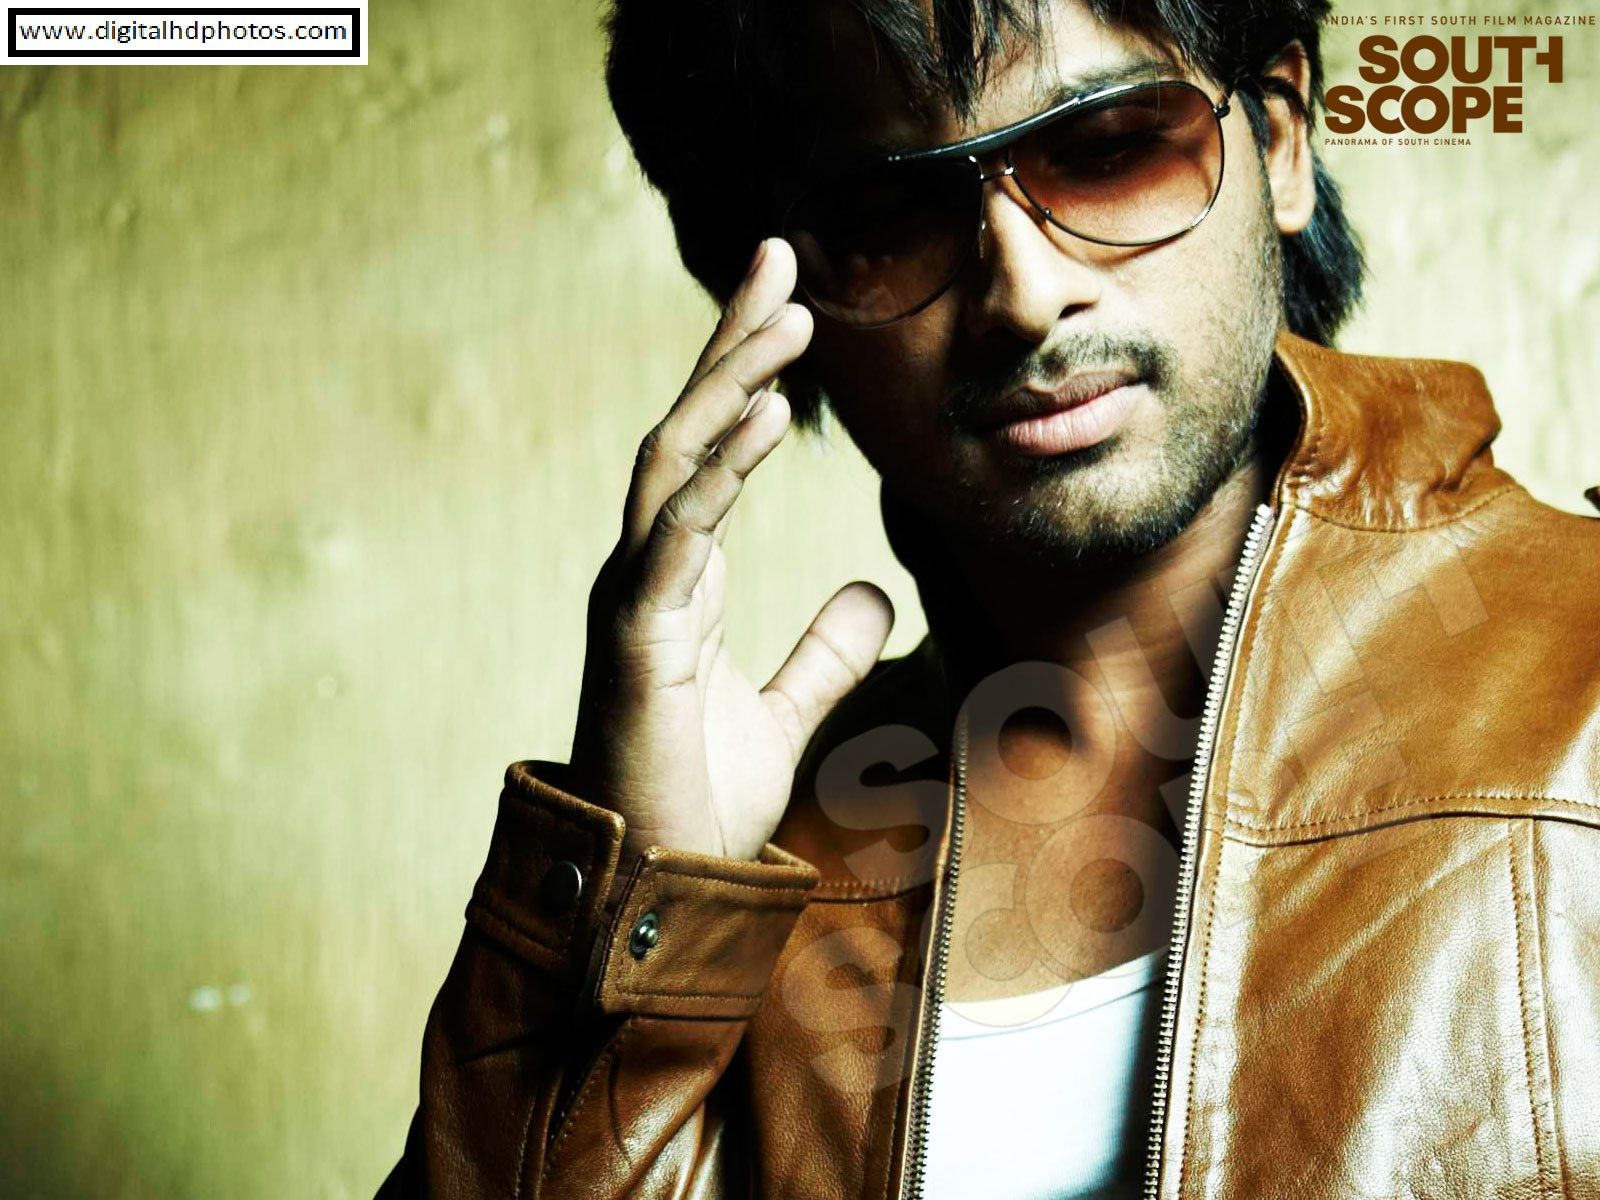 allu arjun in arya 2 wallpapers,eyewear,cool,album cover,music,movie,sunglasses,vision care,glasses,leather,jacket,